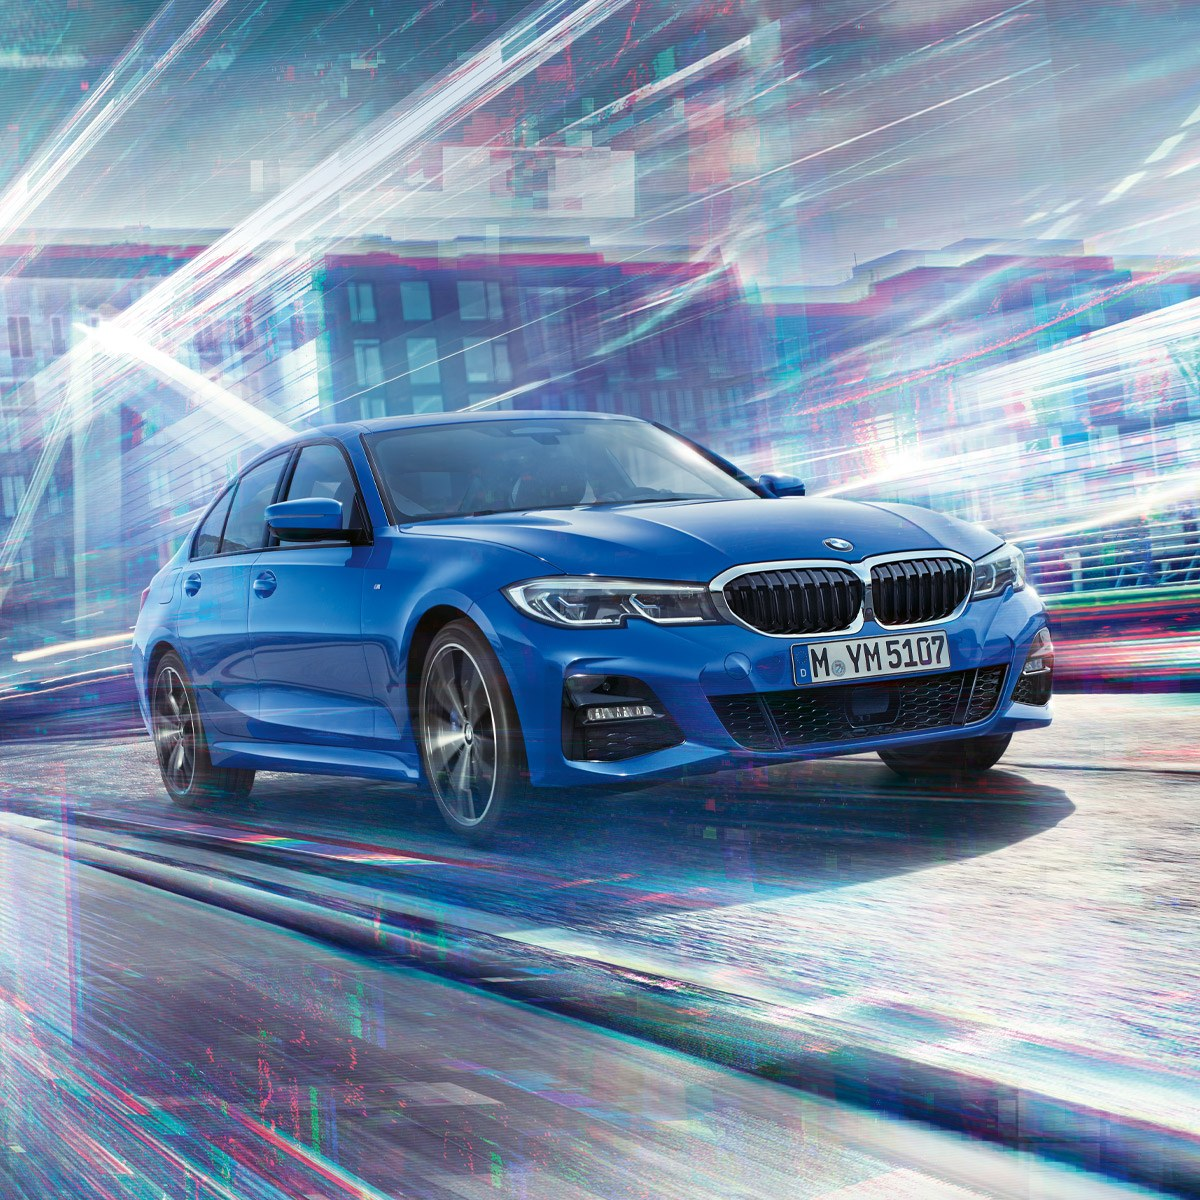 The All-New BMW 3 Series Sedan. With standard xDrive All-Wheel Drive.